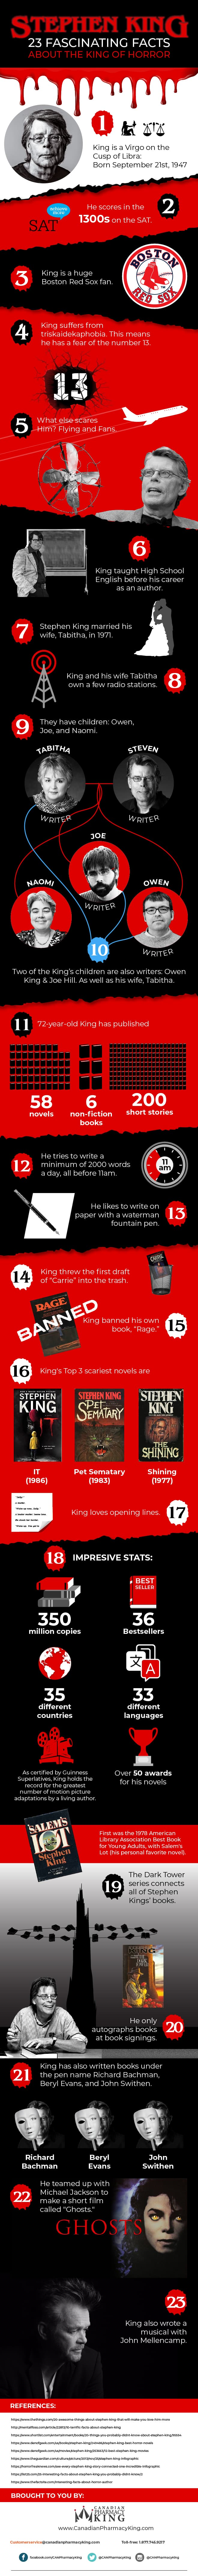 Stephen King Infographic – 23 Fascinating Facts About the King of Horror